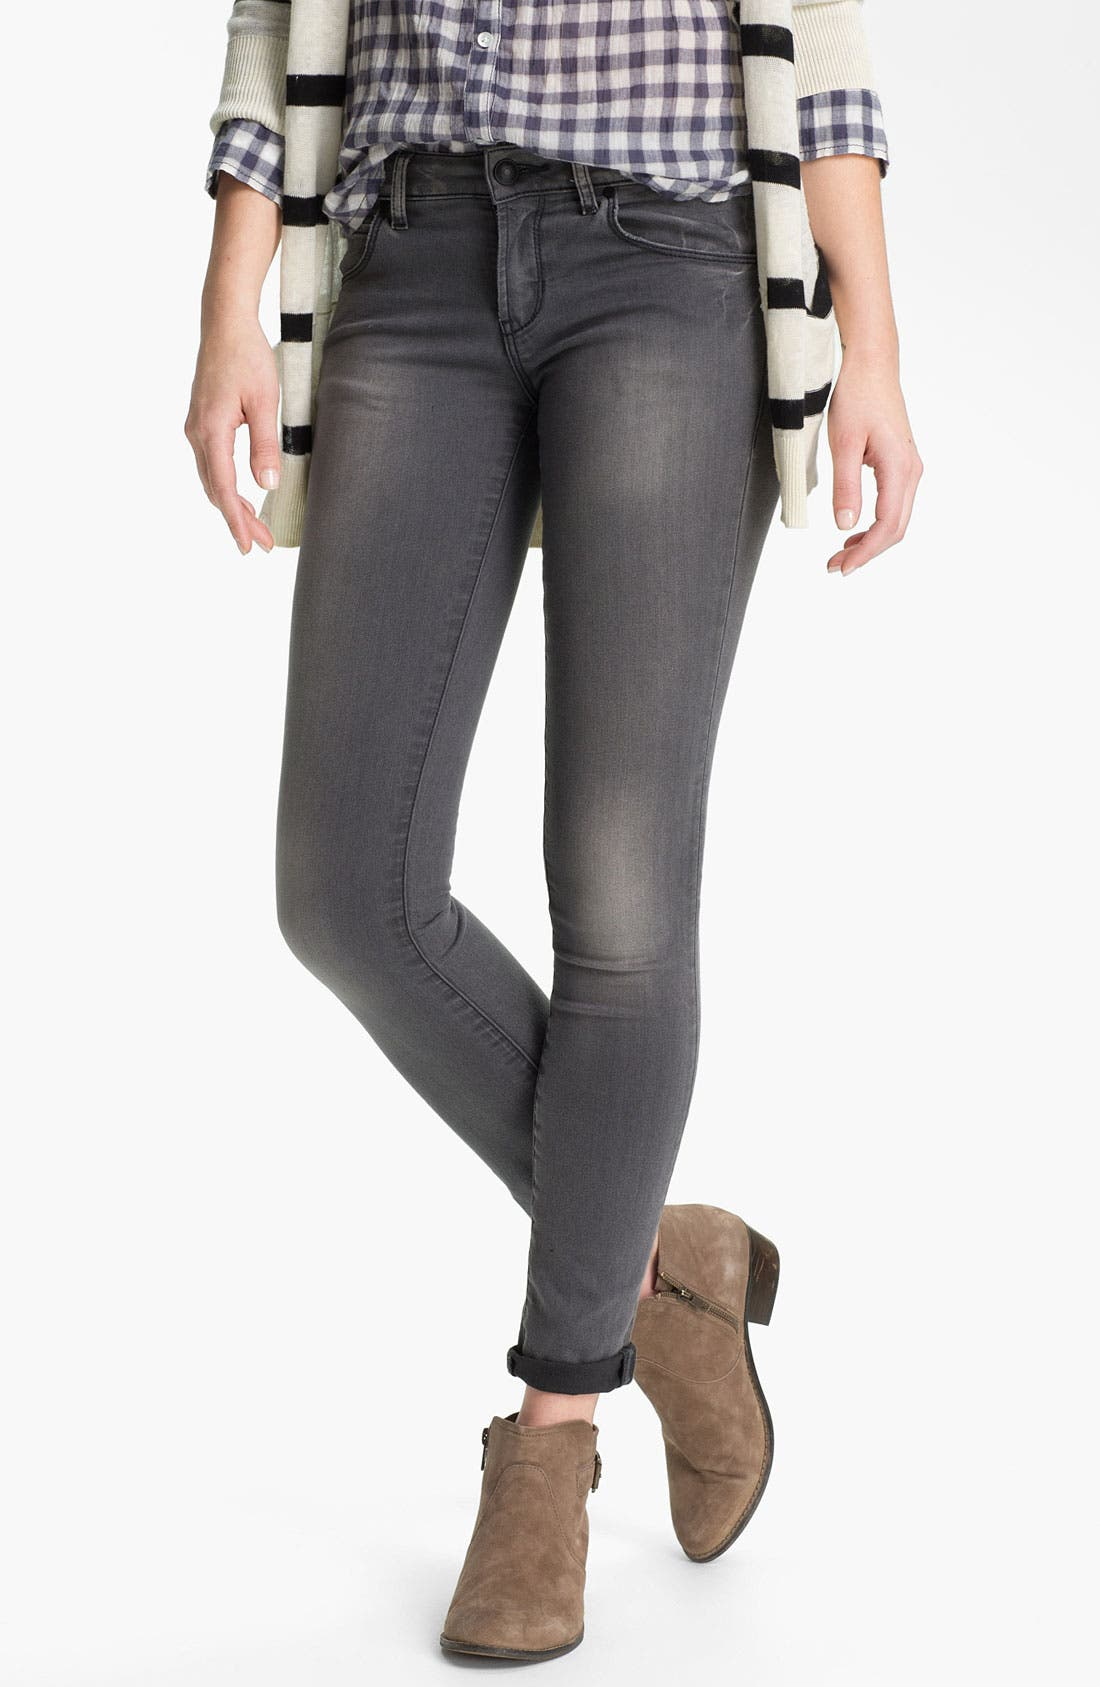 Alternate Image 1 Selected - Articles of Society 'Mya' Skinny Jeans (Greyson) (Juniors)